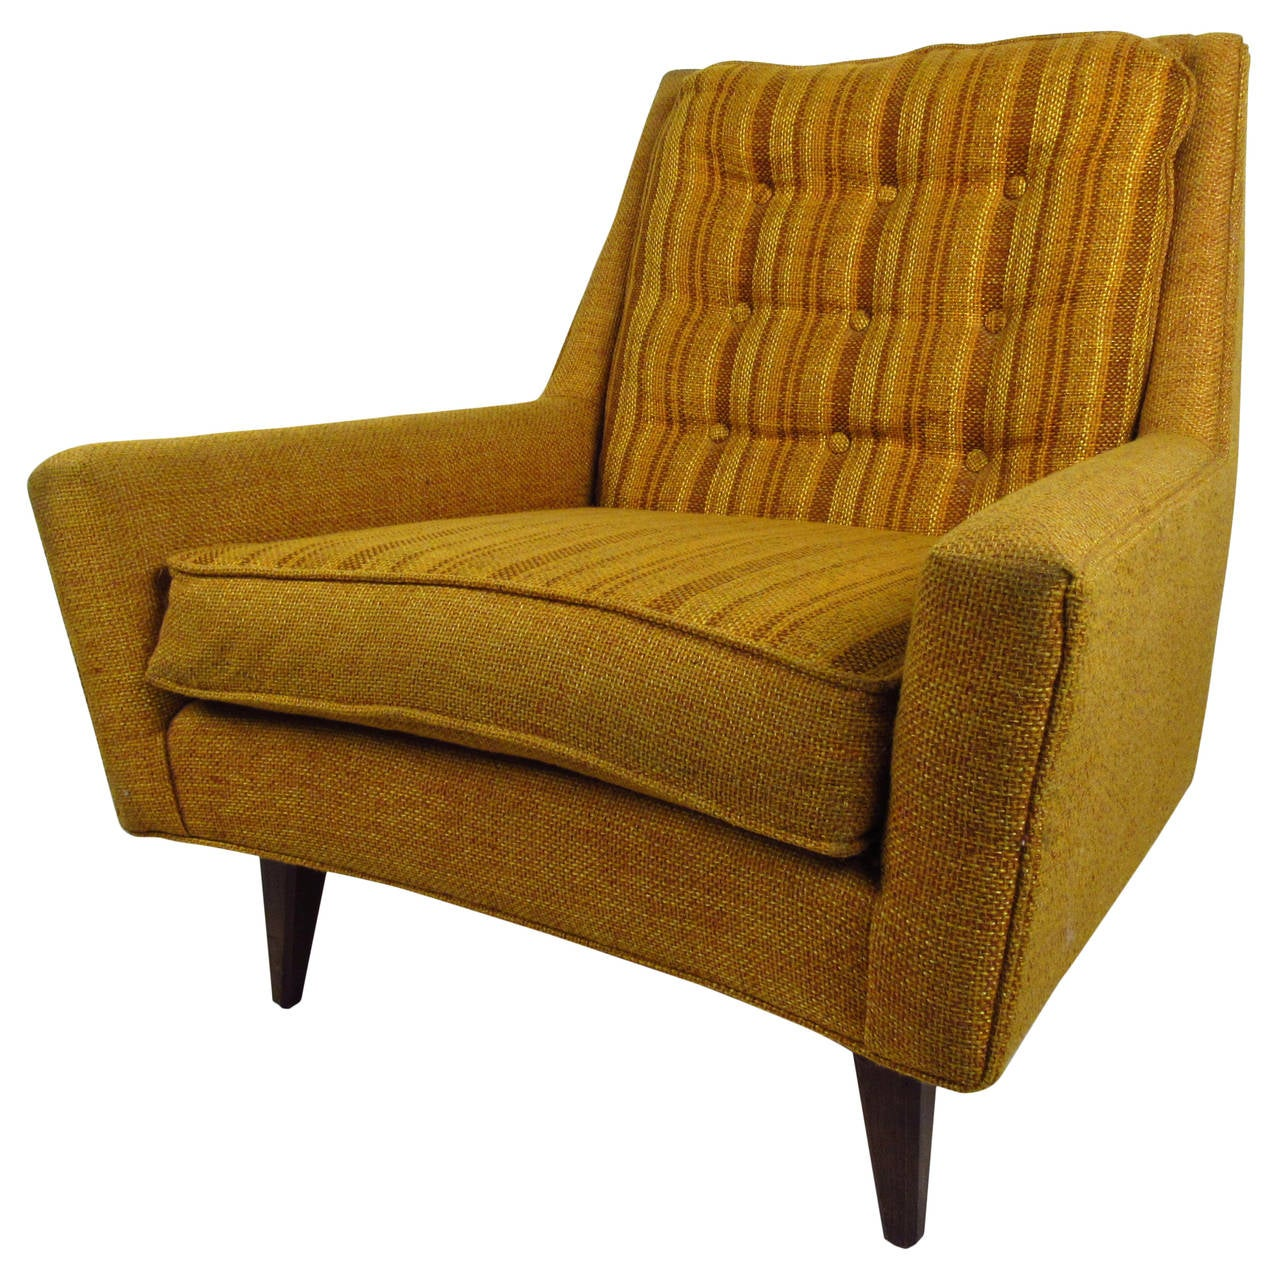 Mid-Century Modern Upholstered Lounge Chair With Tufted